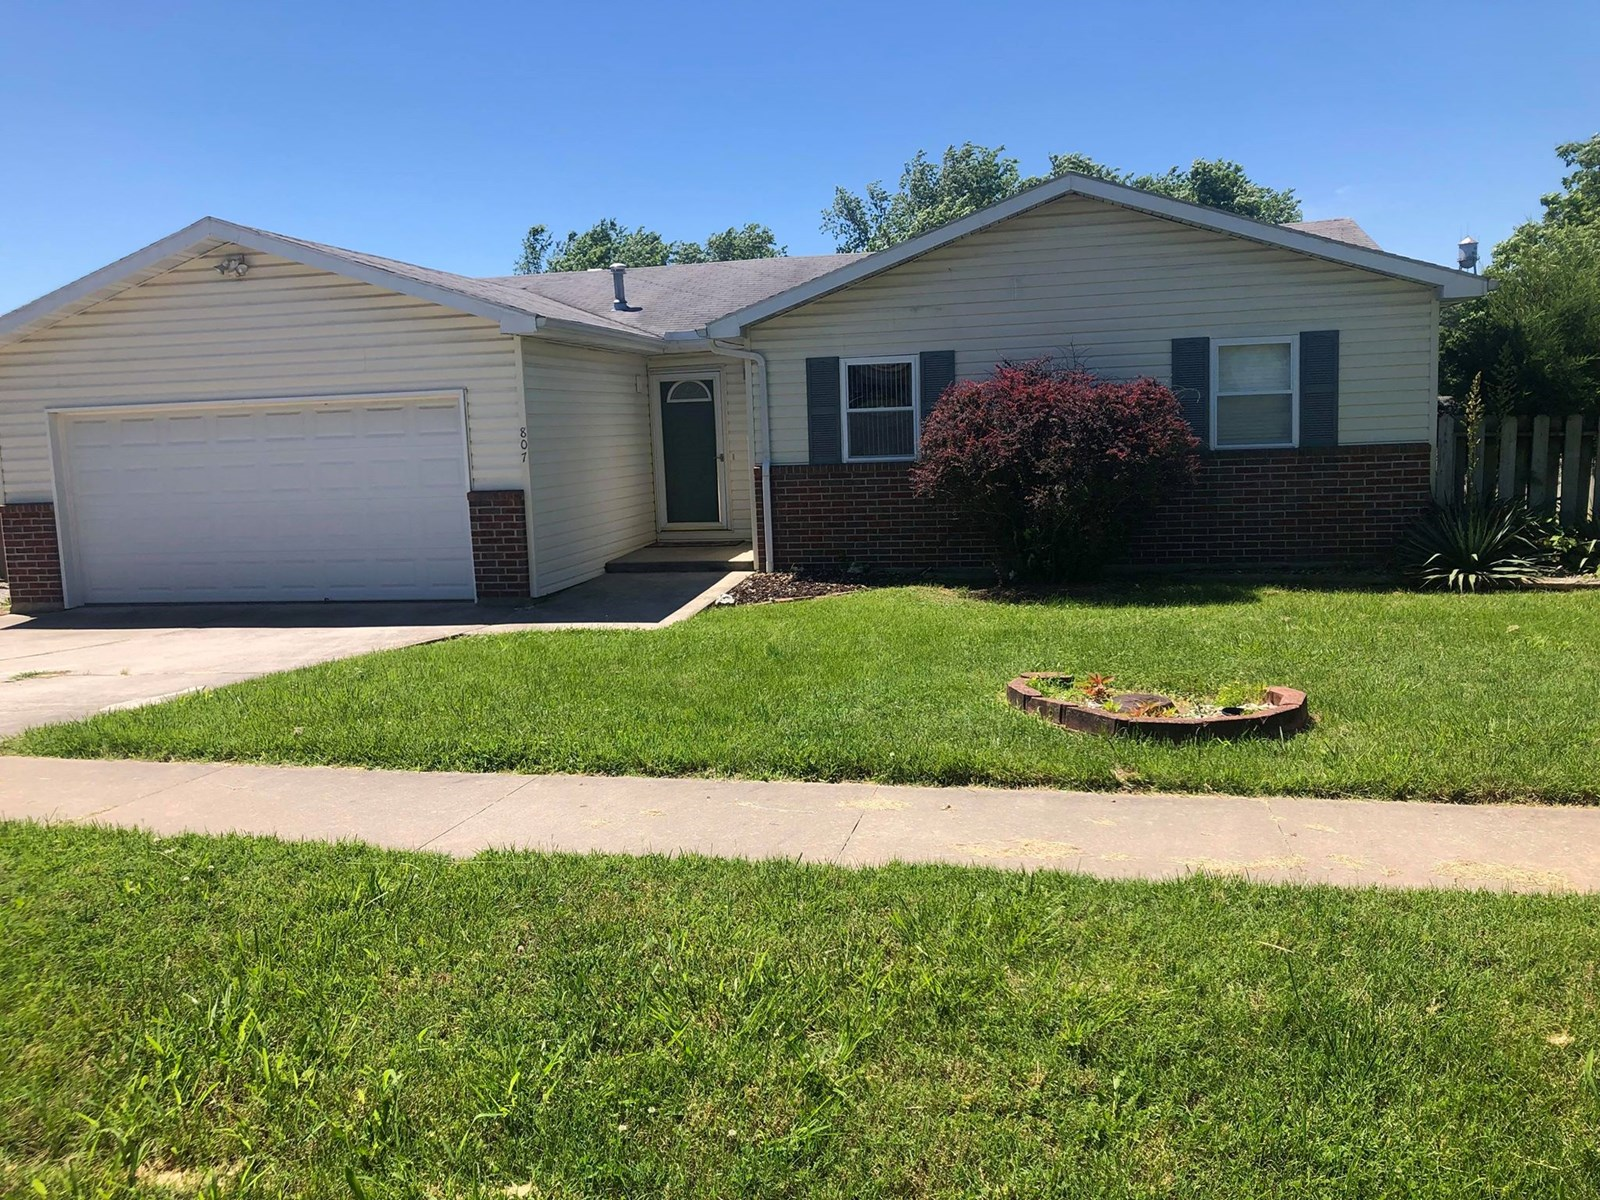 Clean house for sale in Ava, Mo. Move in ready!